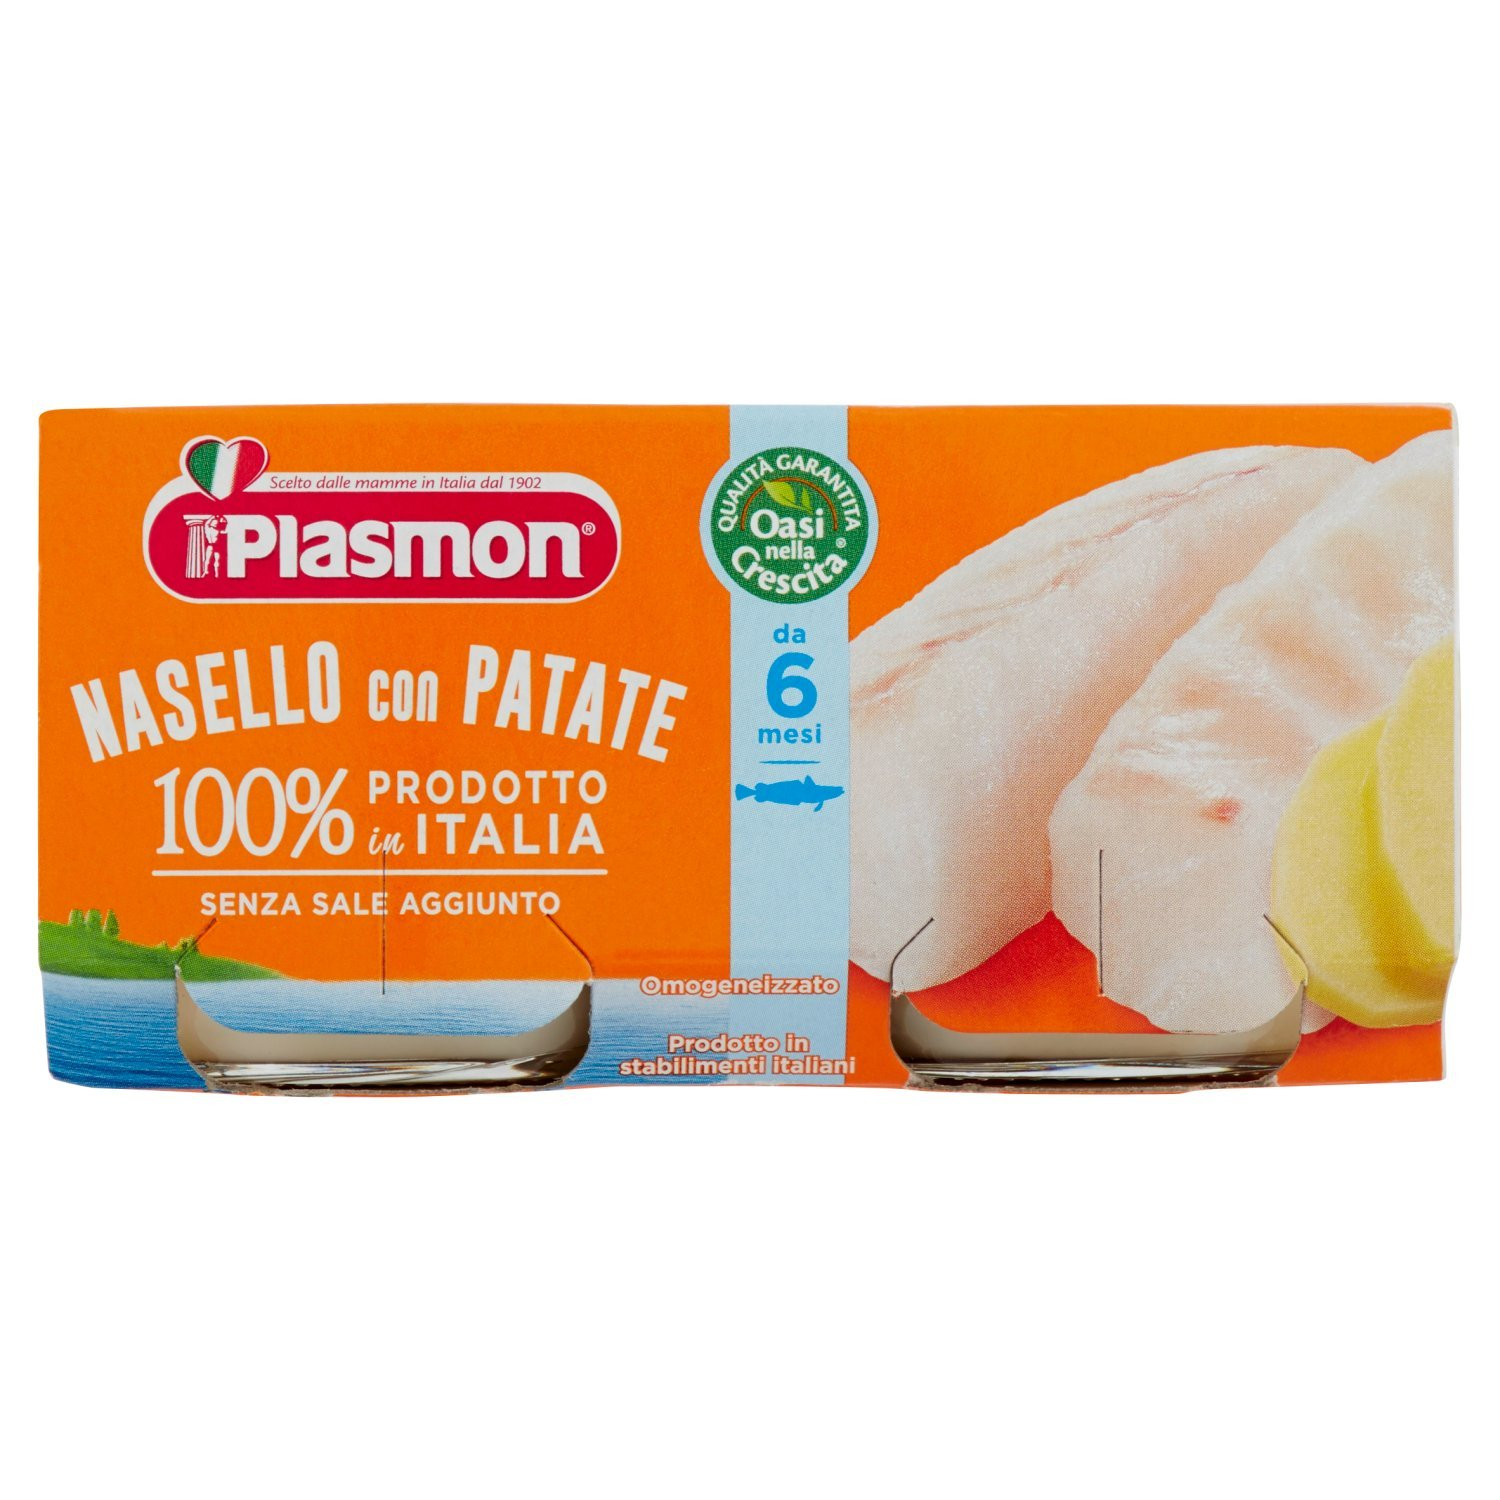 Plasmon Cod & Hake fillets with Potatoes Meal Puree (2x80g) 70909200